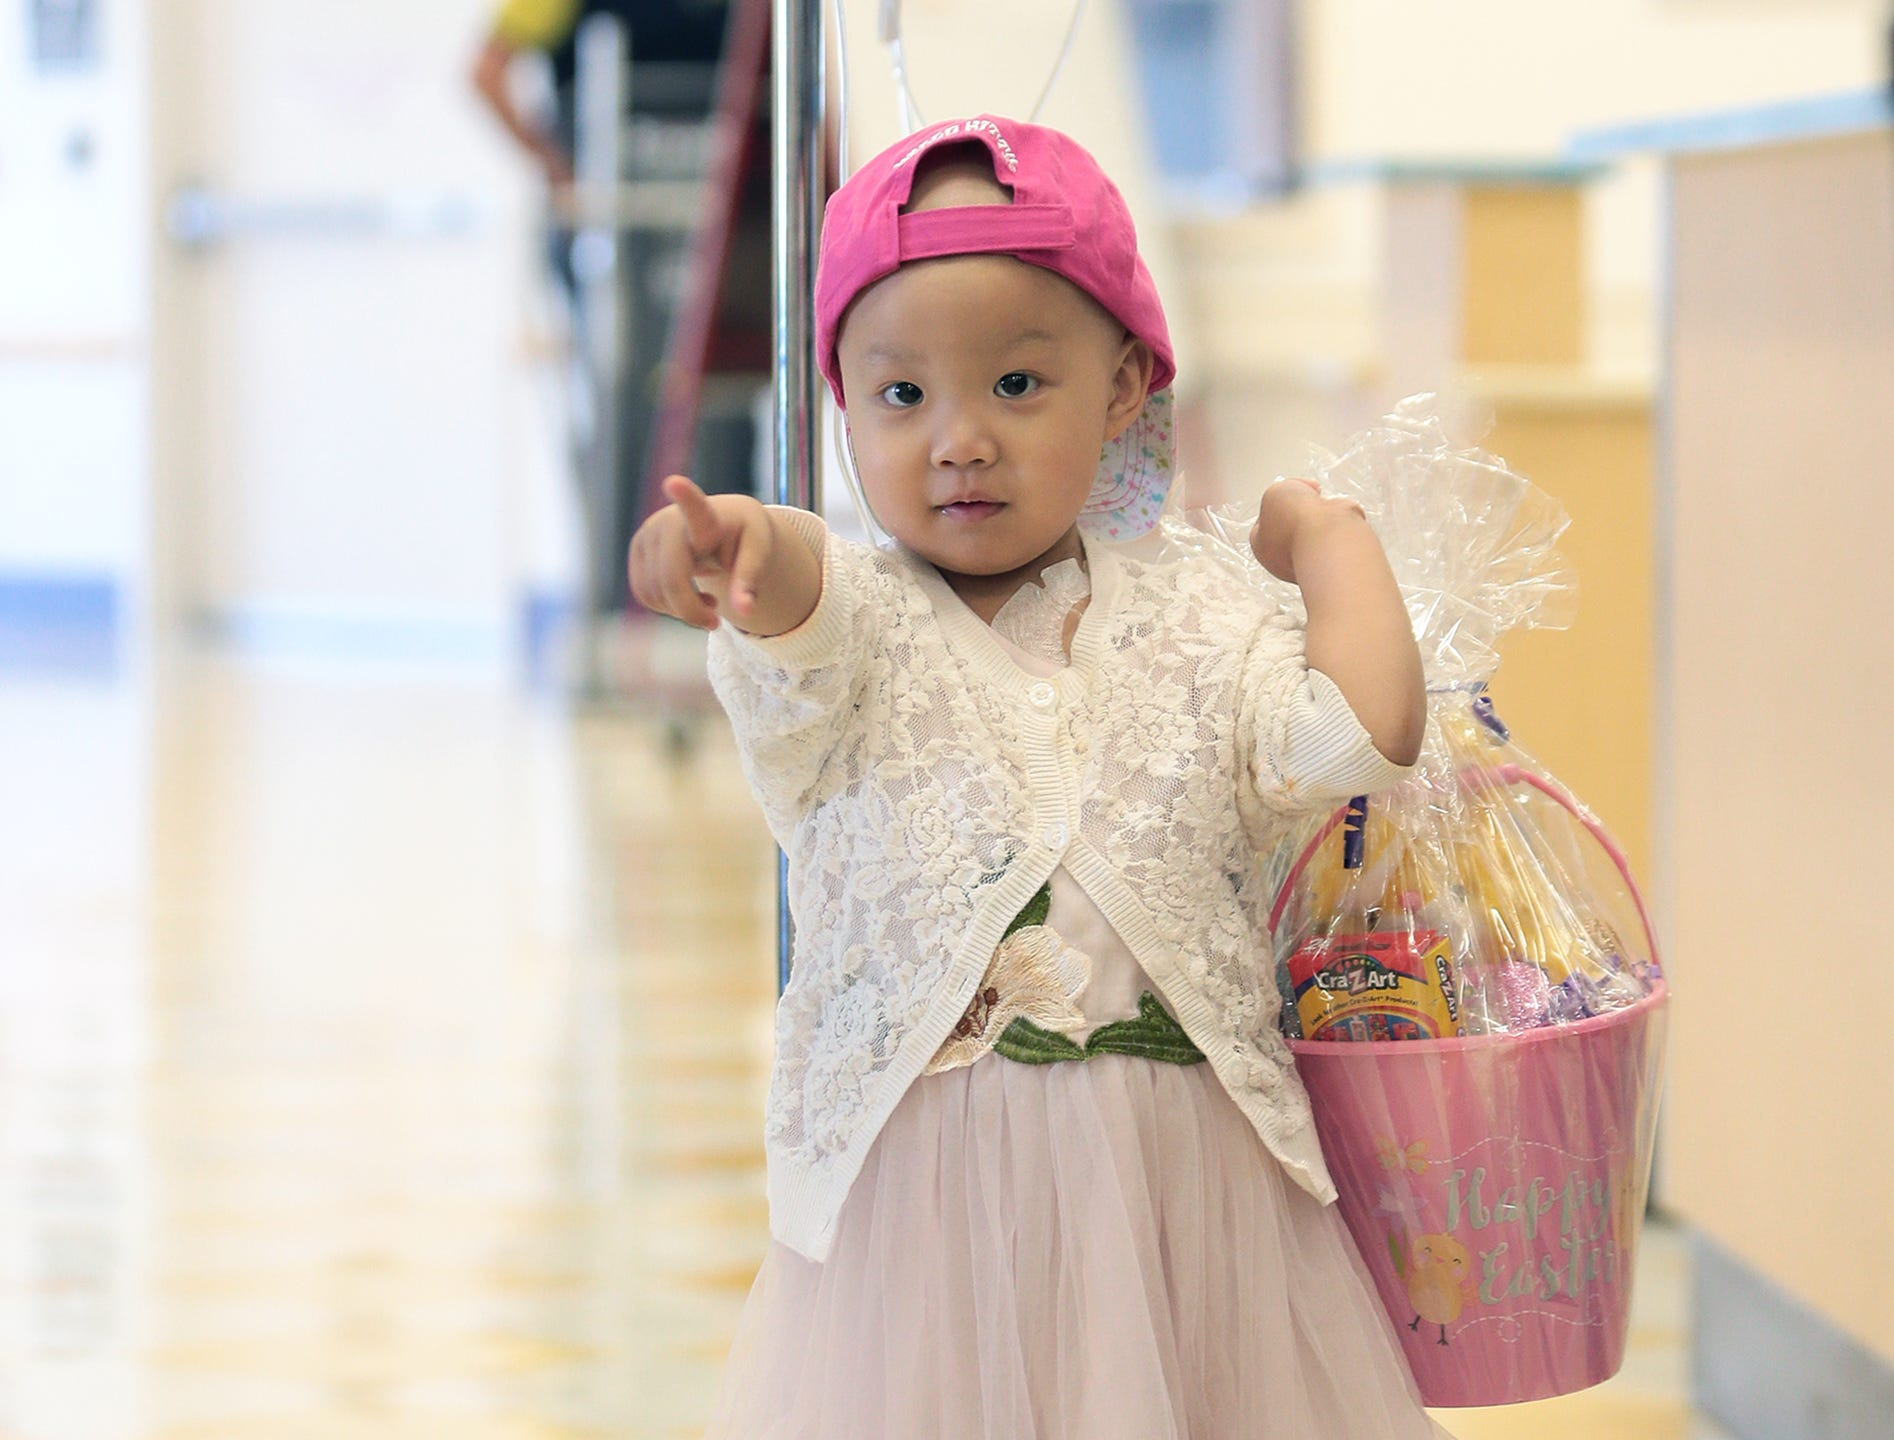 Nicole Liu, 2, points to the Easter Bunny, who had just given her an Easter Basket on Thursday, April 18, 2019, at El Paso Children's Hospital. The Easter Bunny visited children at the hospital, along with El Paso Sheriff Richard Wiles and several deputies. Nicole followed the Easter Bunny on his entire visit at the hospital.